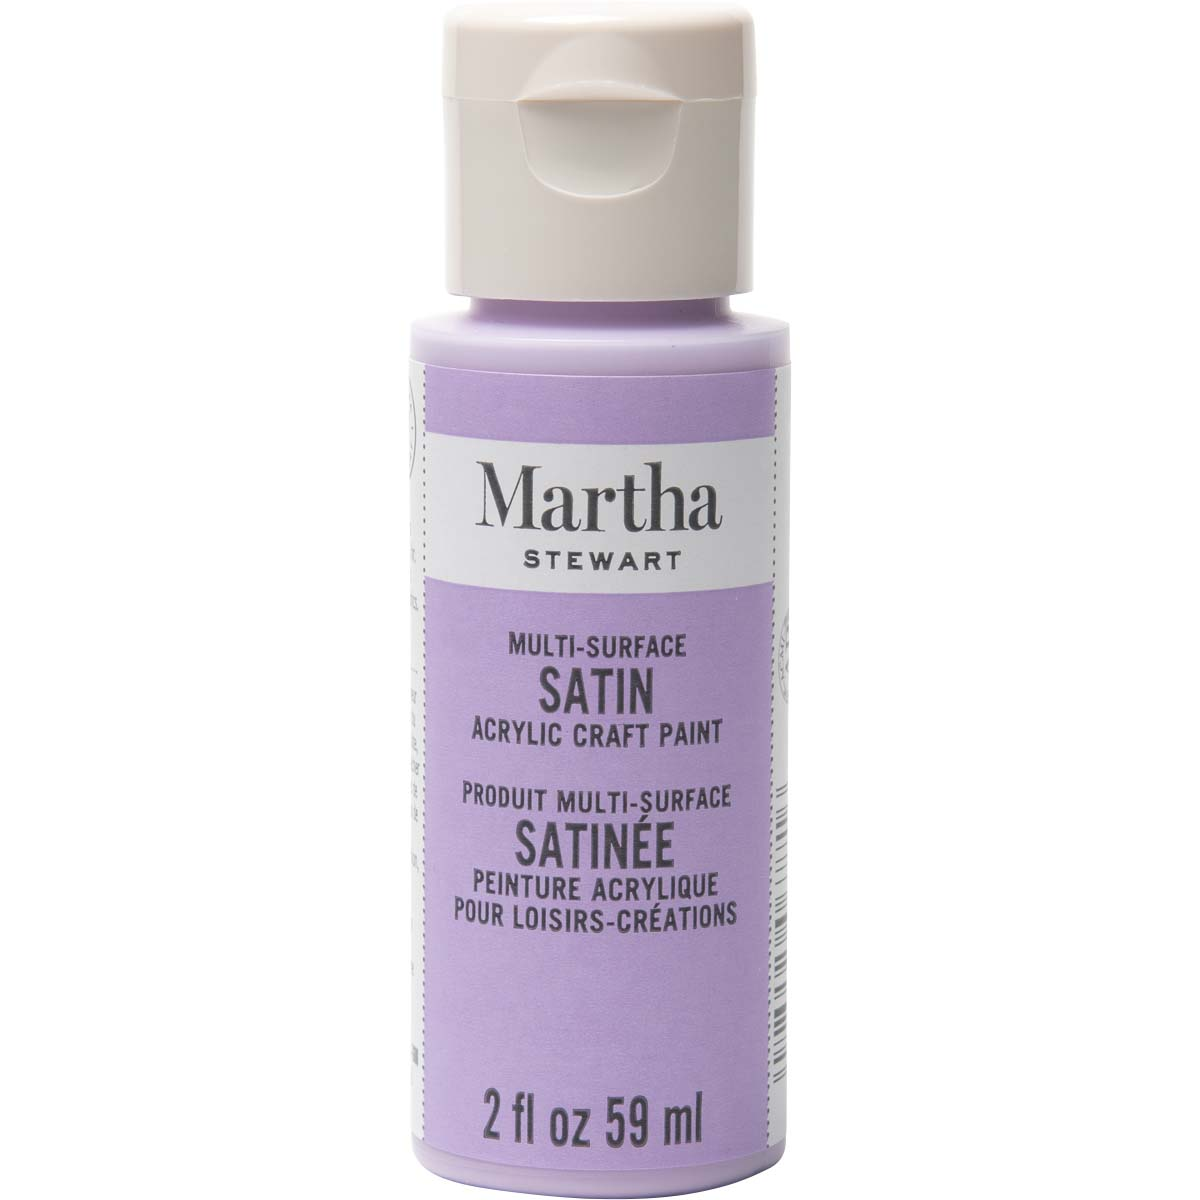 Martha Stewart ® Multi-Surface Satin Acrylic Craft Paint - Hydrangea Purple, 2 oz. - 32028CA